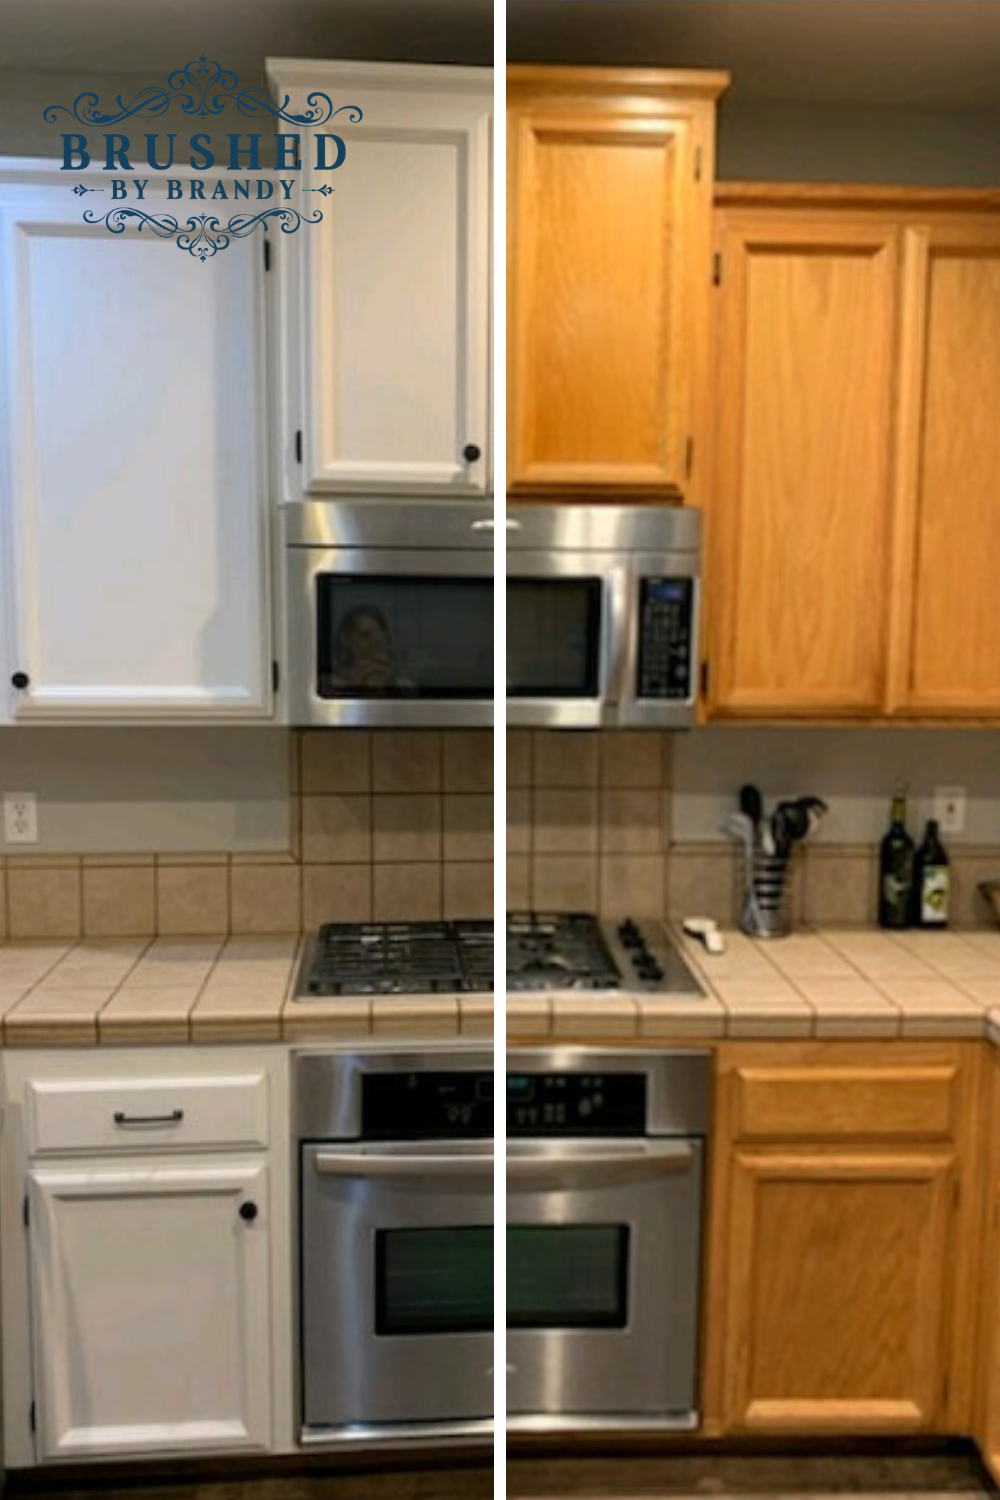 Kitchen Cabinet DIY Painting Makeover! Paint Old Oak Cabinets White with Brushed by Brandy